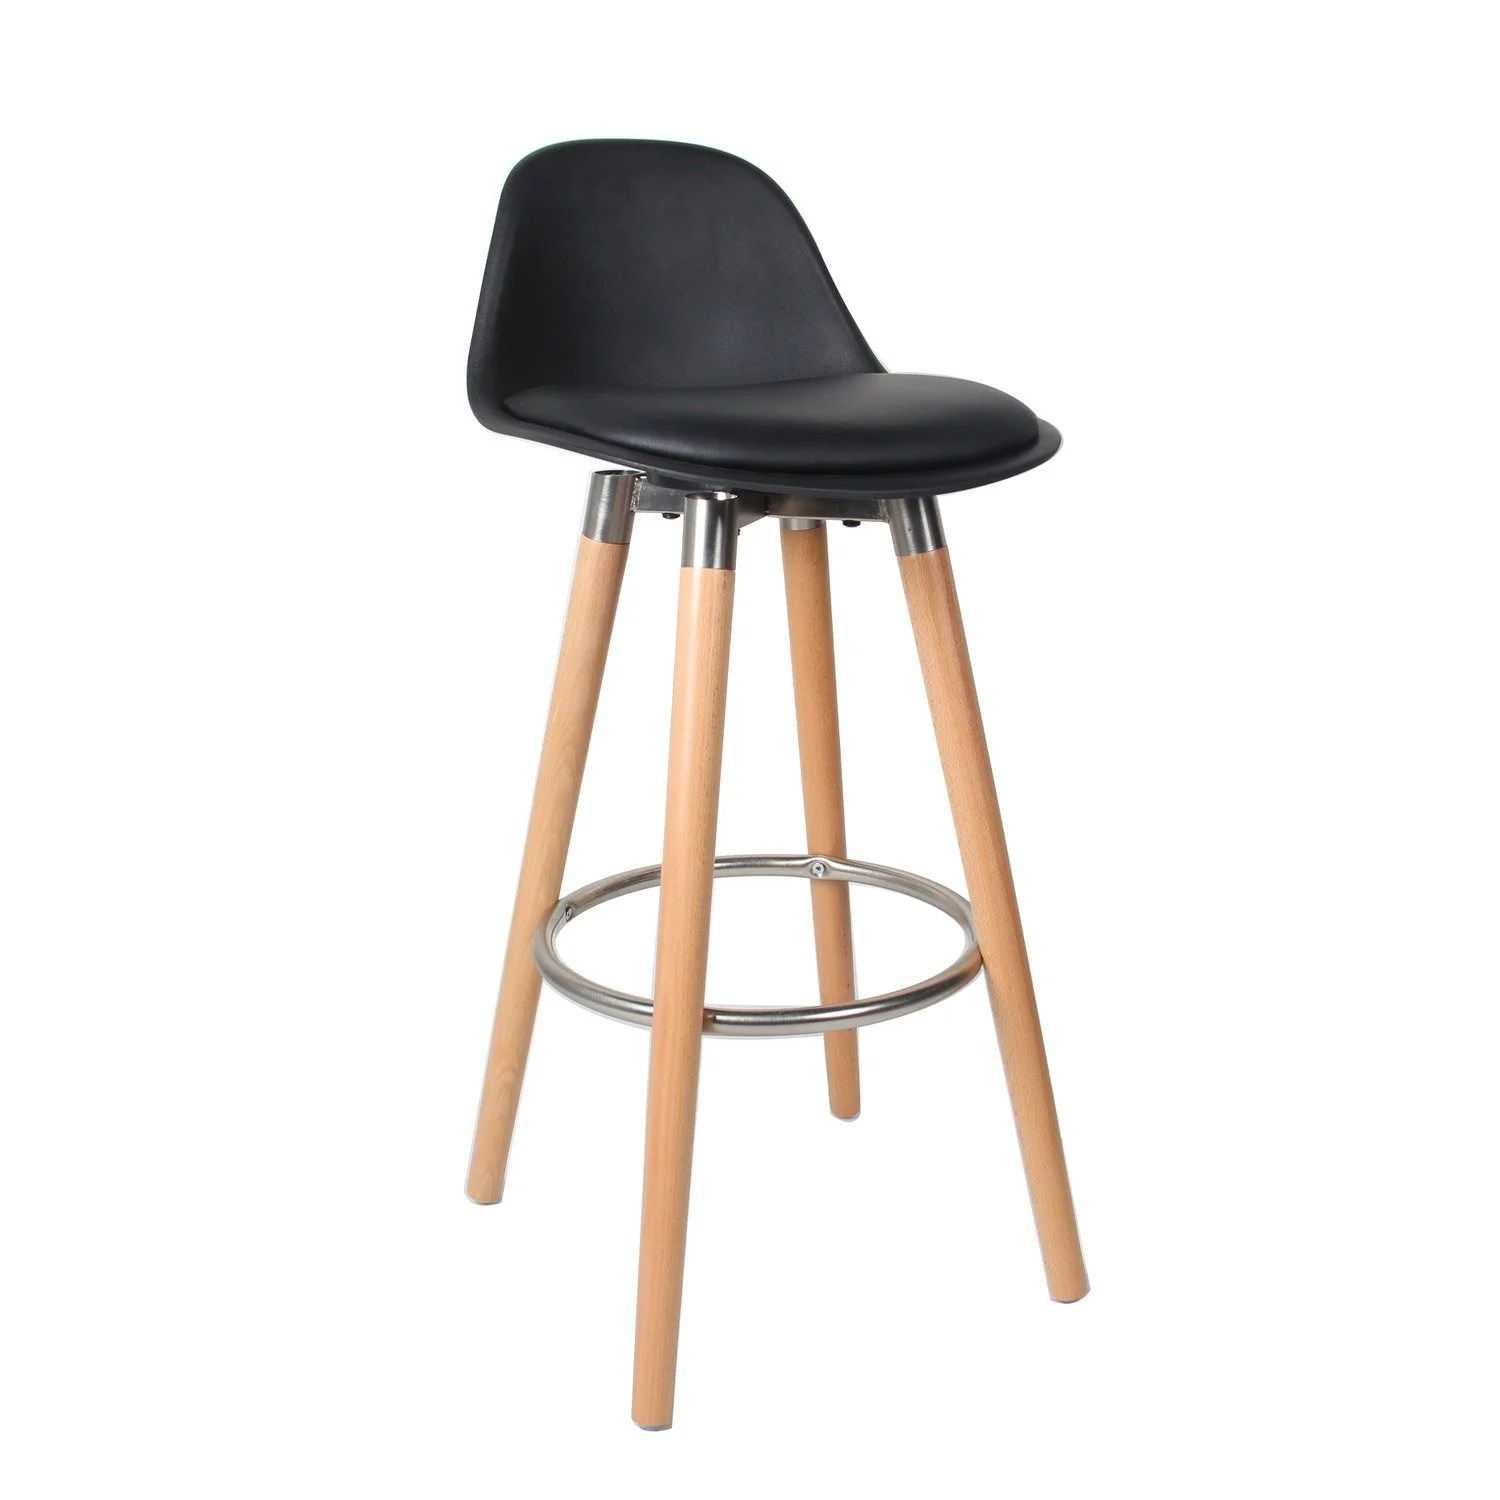 Songmics Lot De 2 Tabourets De Bar Stool Lot De 2 Tabourets Lam Noir Leroy Merlin